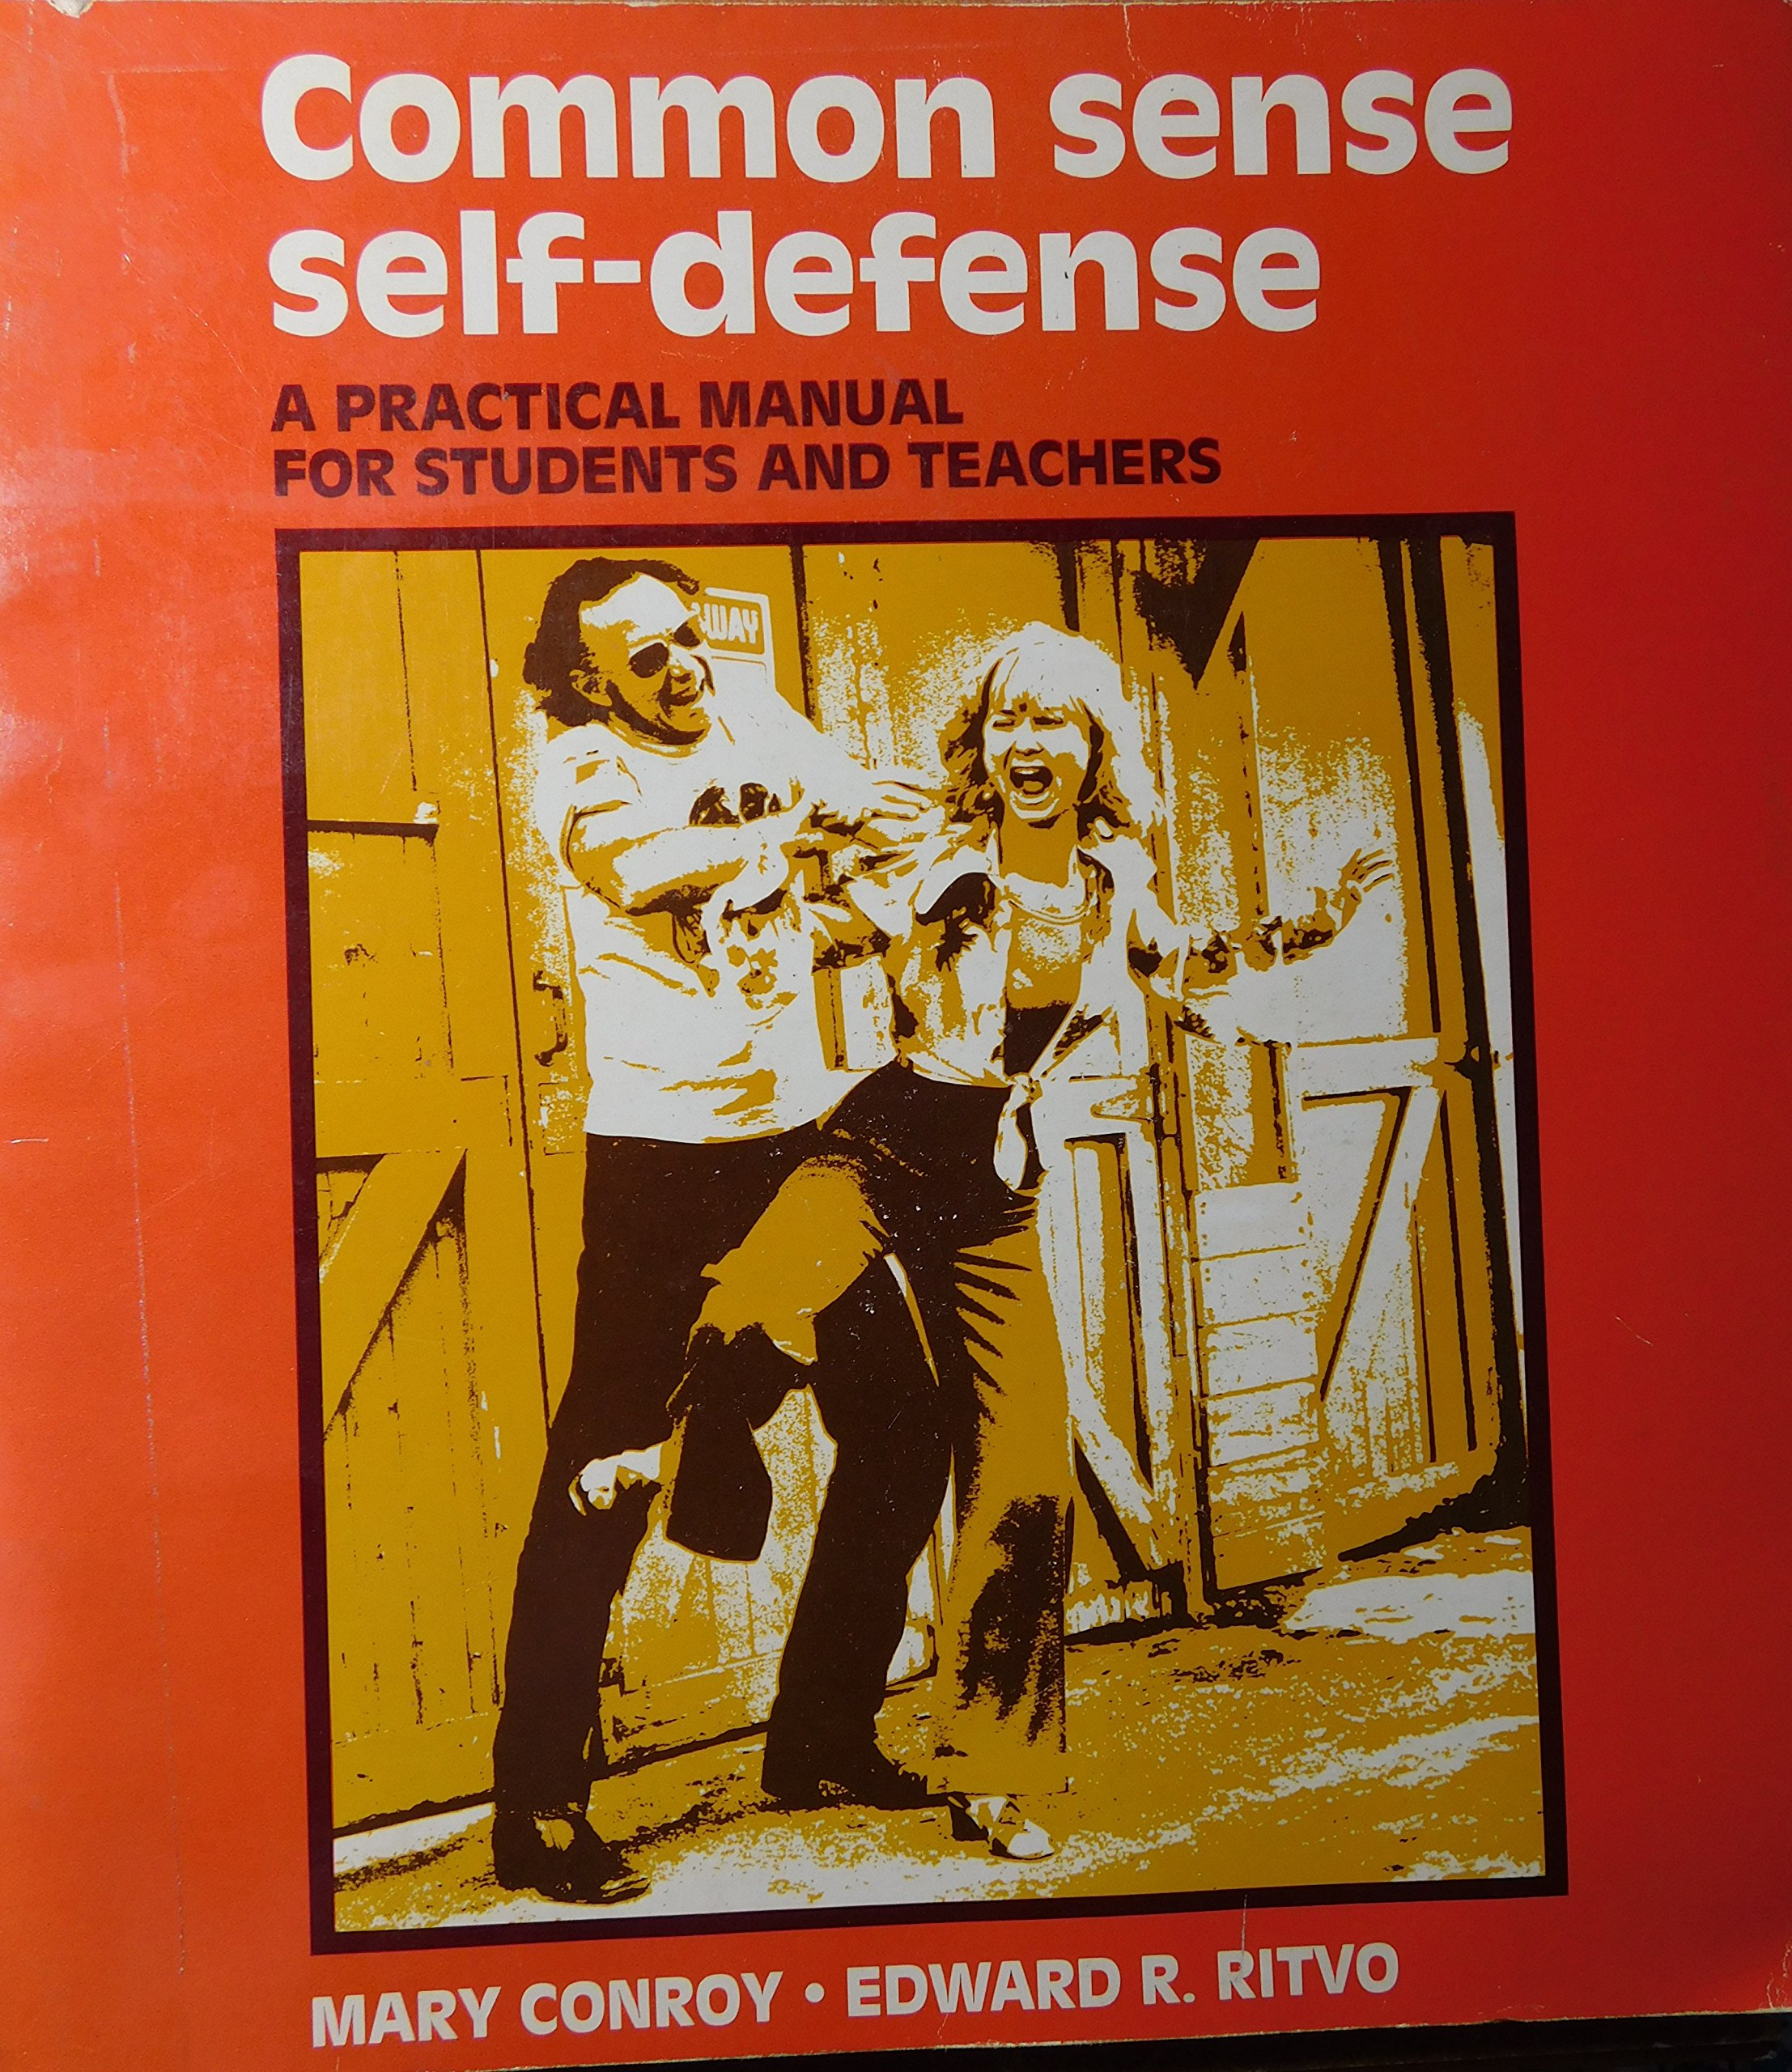 Common Sense Self Defence: A Practical Manual for Students and Teachers: M.  Conroy, Edward R. Ritvo: 9780801610271: Amazon.com: Books